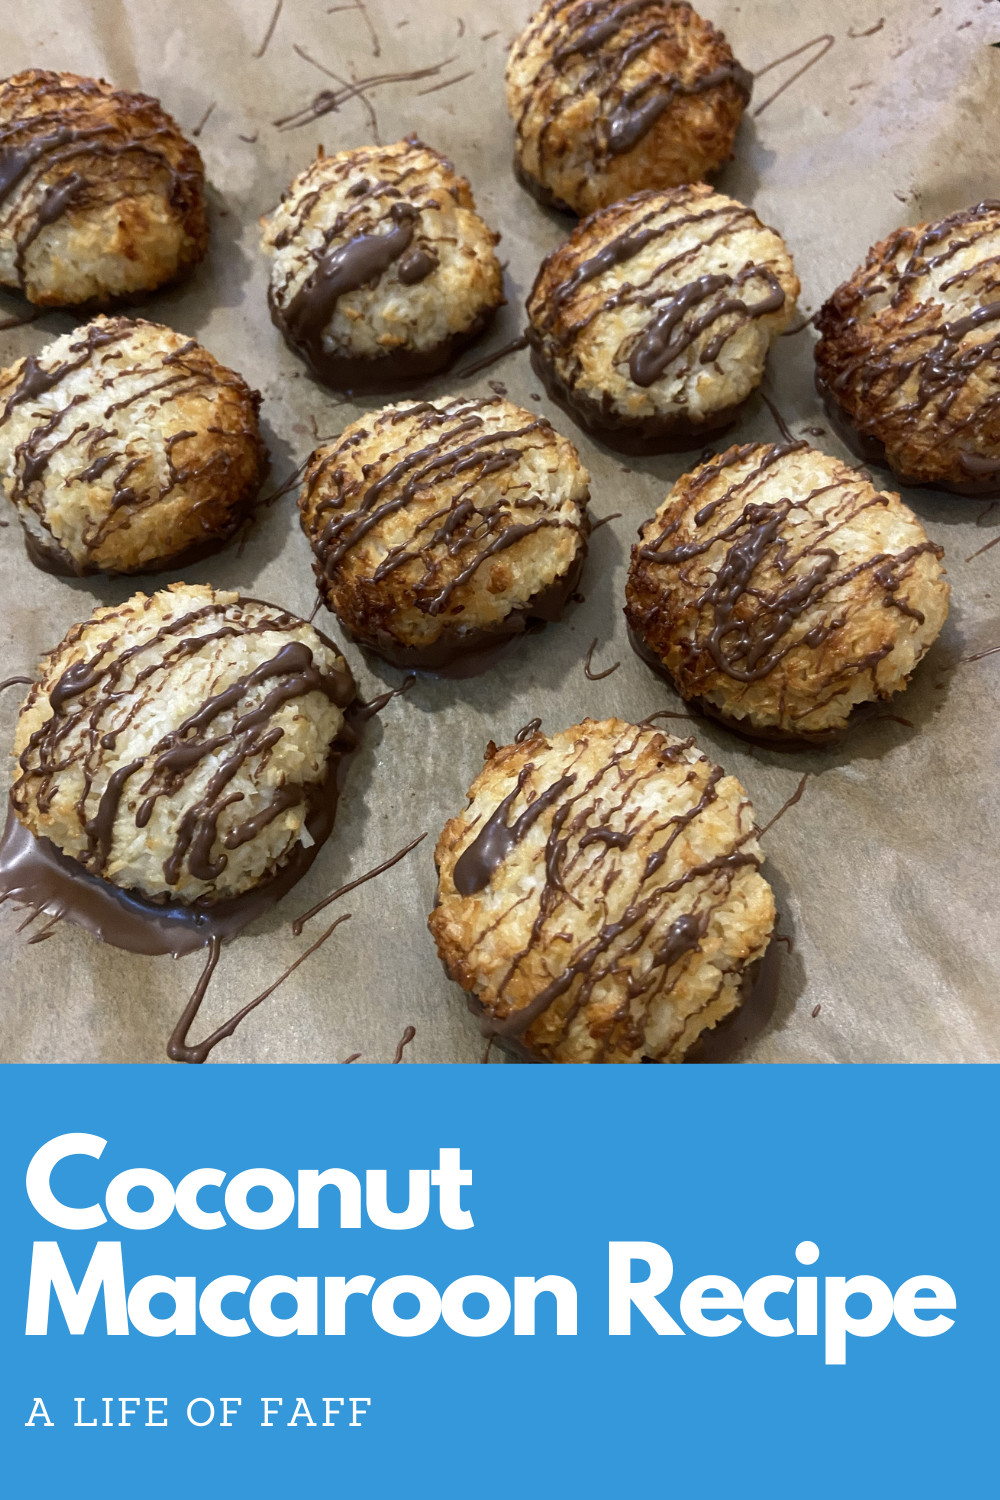 Coconut macaroon recipe Pin 1 for Pinterest